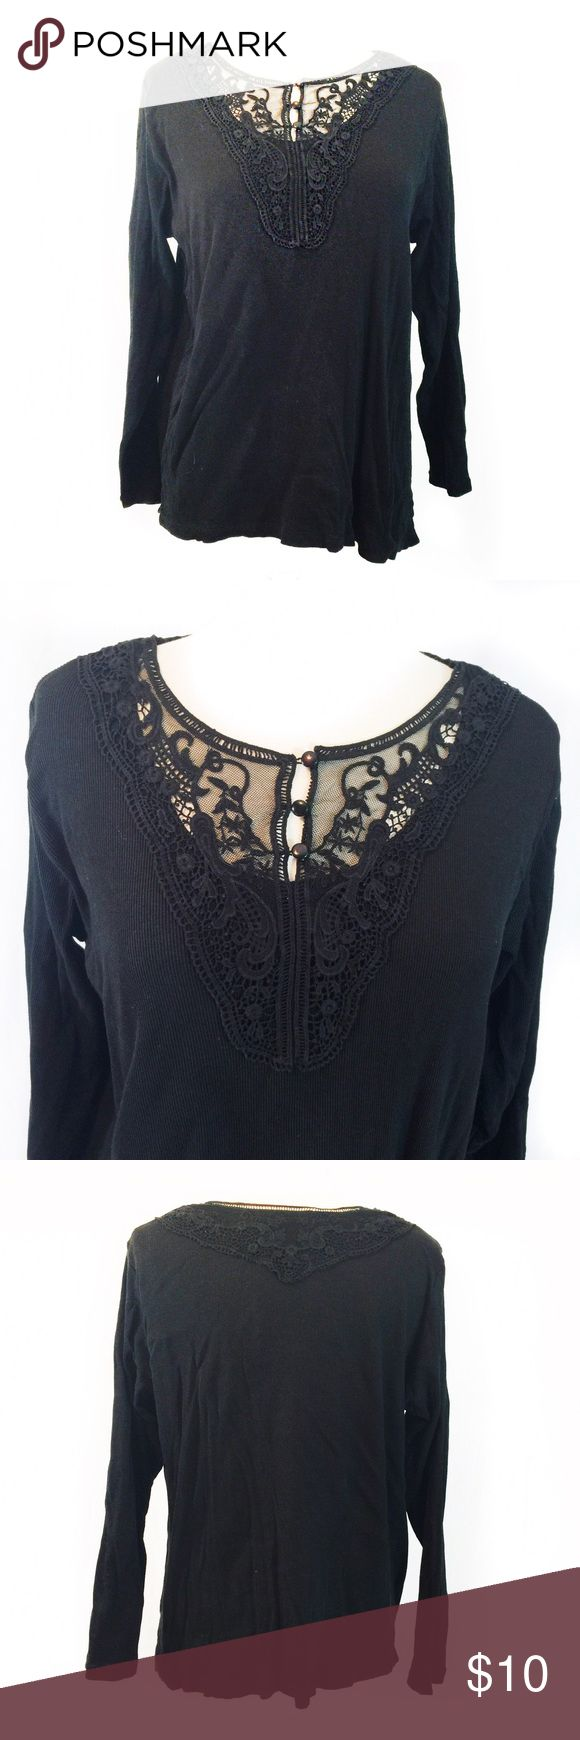 🎉HP🎉PLUS SIZE BLACK LONG SLEEVE TOP 🎉Host Pick for Everything Plus 11.22.2016🎉Beautiful top; Fabric content: 100% cotton; Bust: 44-47 inches. Material is stretchy. Shoulder to bottom hem: 25 inches. Care: Machine wash cold. Love the neckline. Good condition. No stains or holes. Brand: Denim + Company ( d & co.) d & co. Tops Tees - Long Sleeve